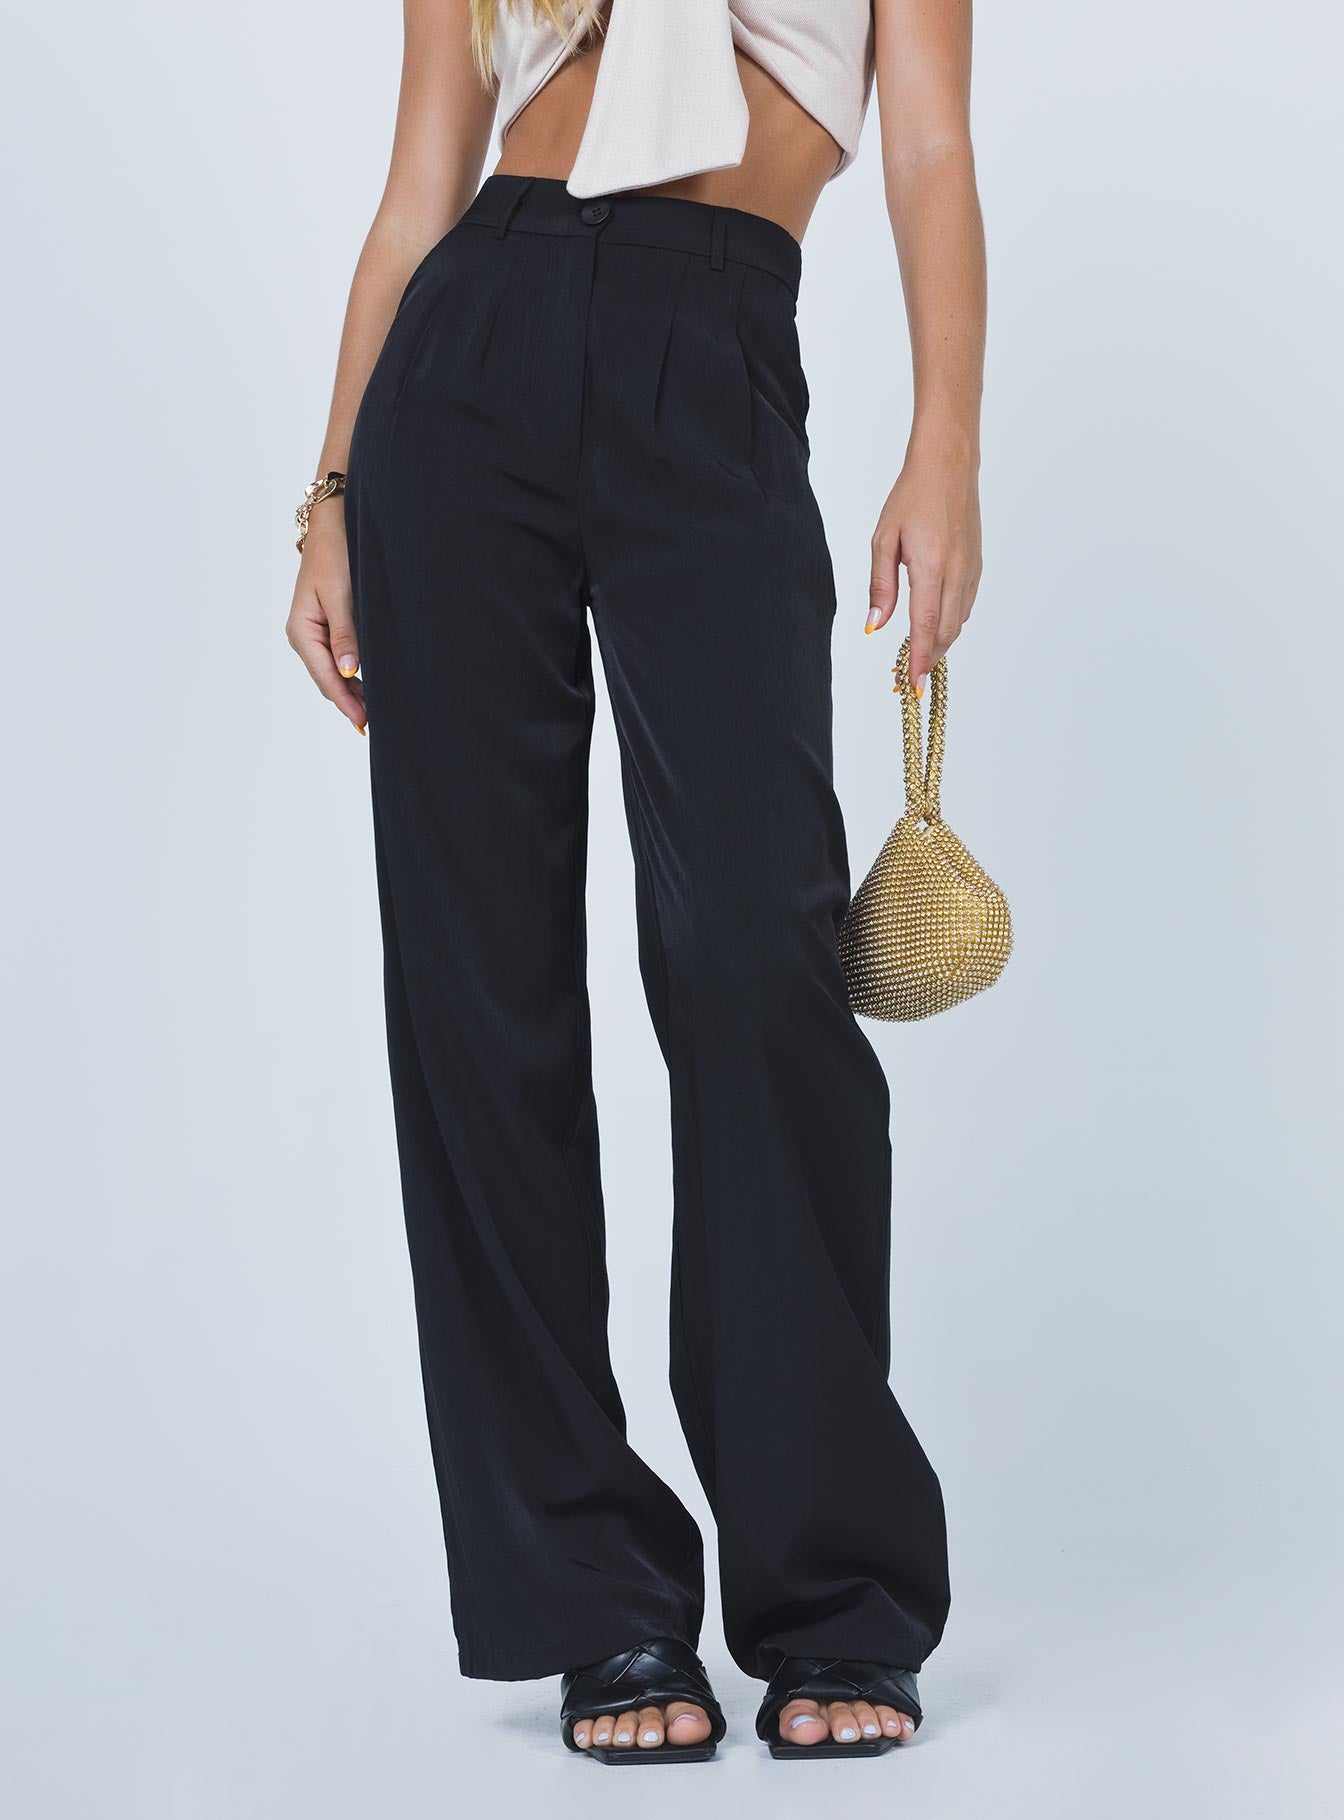 Kacey Pants Black